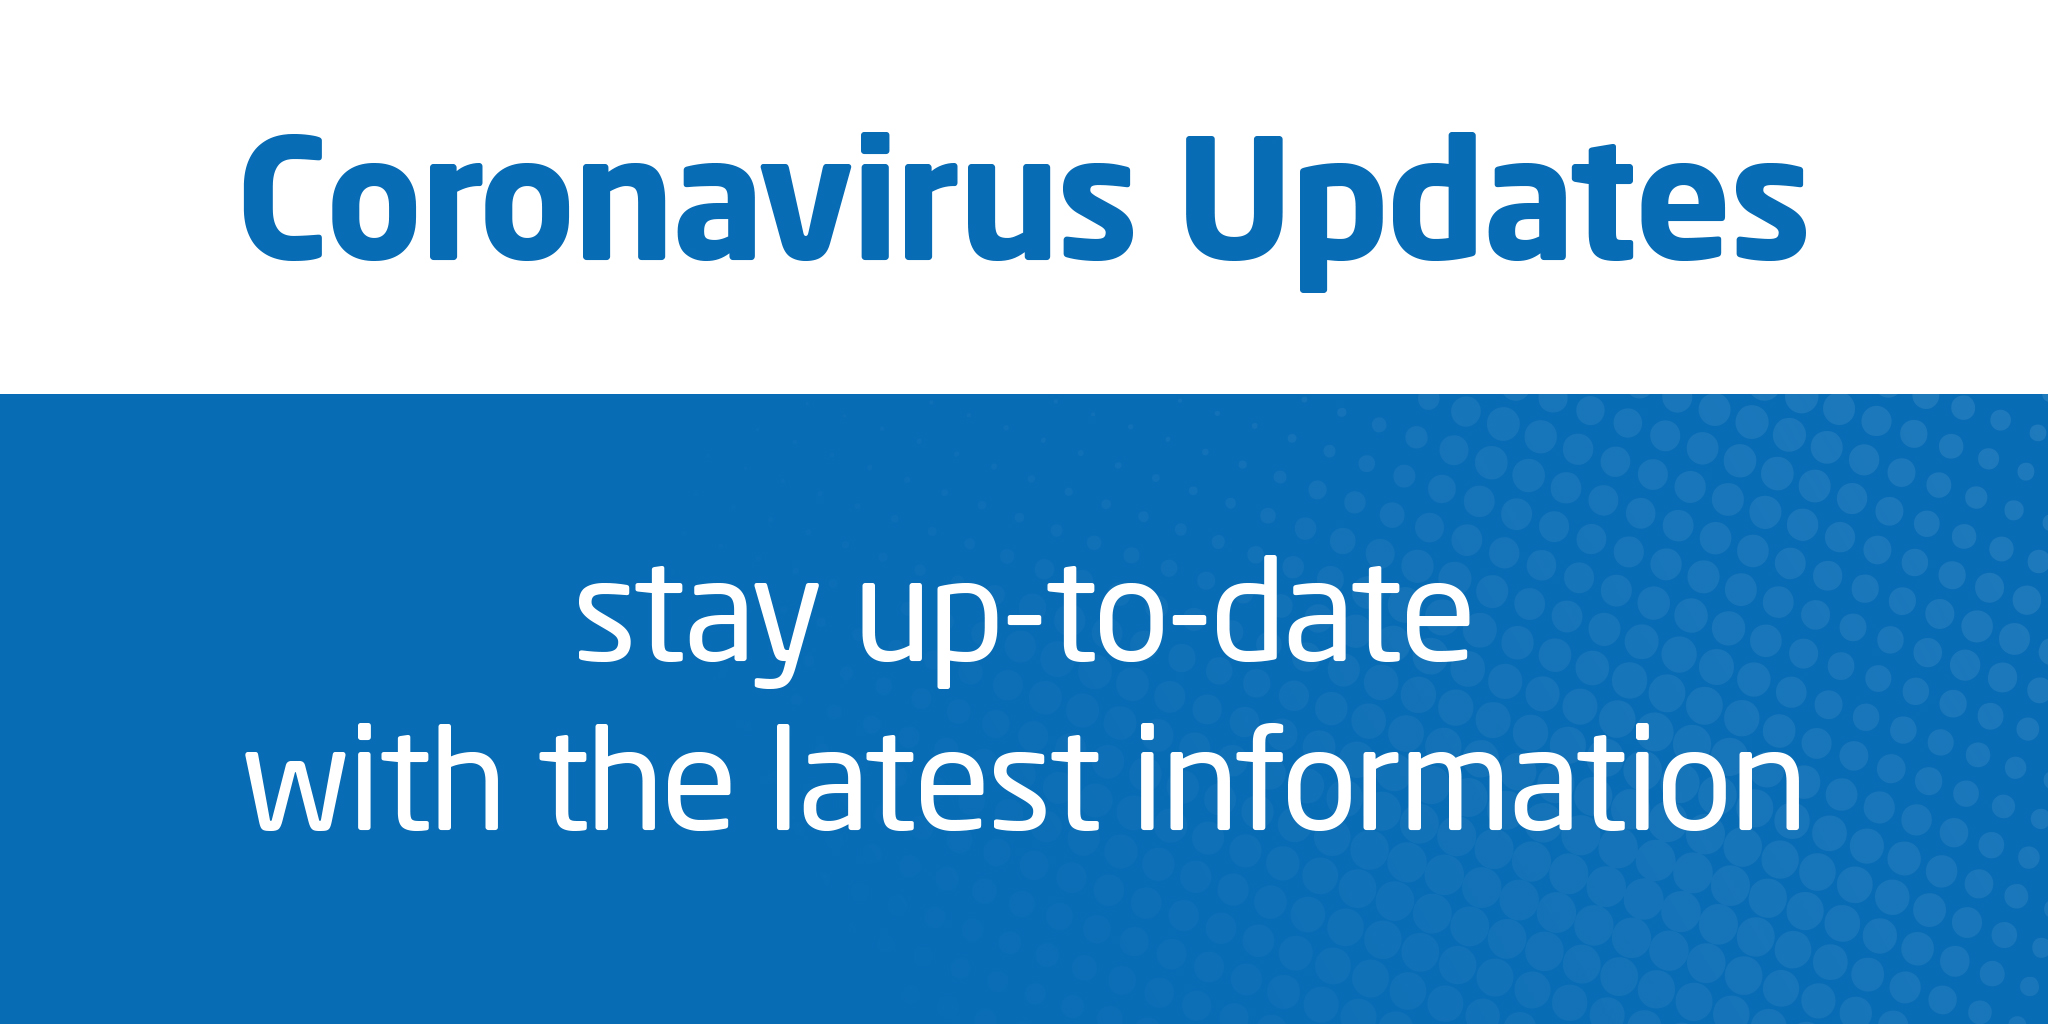 Image reading 'Coronavirus Updates - stay up-to-date with the latest information'